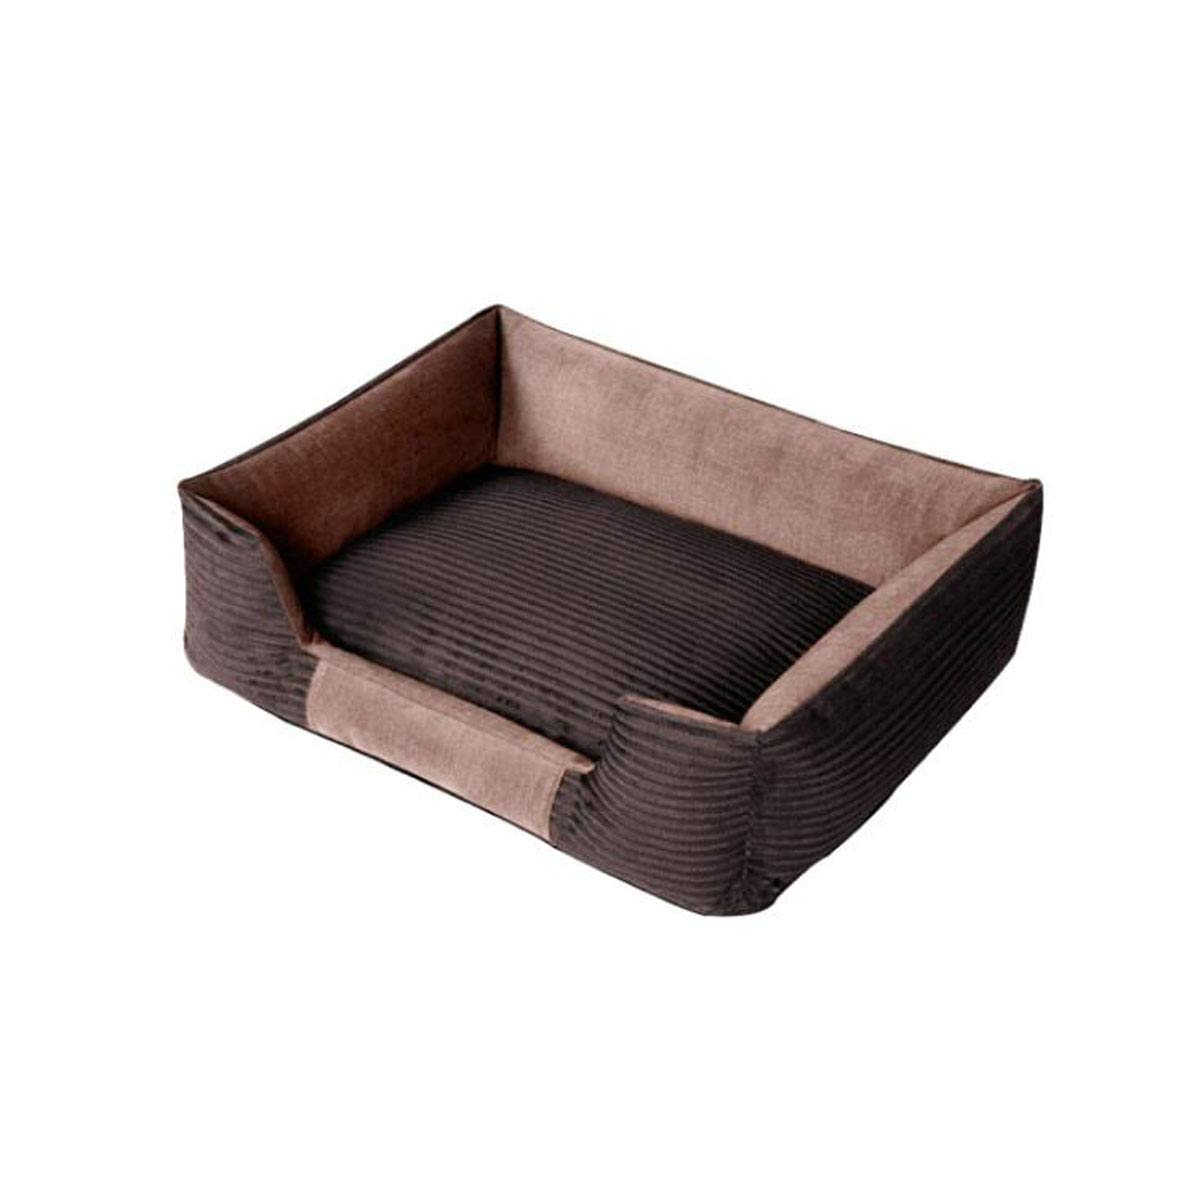 Ochre XL8haowenju Dog bed, detachable puppy, teddy golden dog pad, large dog bed, small medium and large mattress, dog mattress, pet supplies, Garfield, kennel Comfortable and comfortable